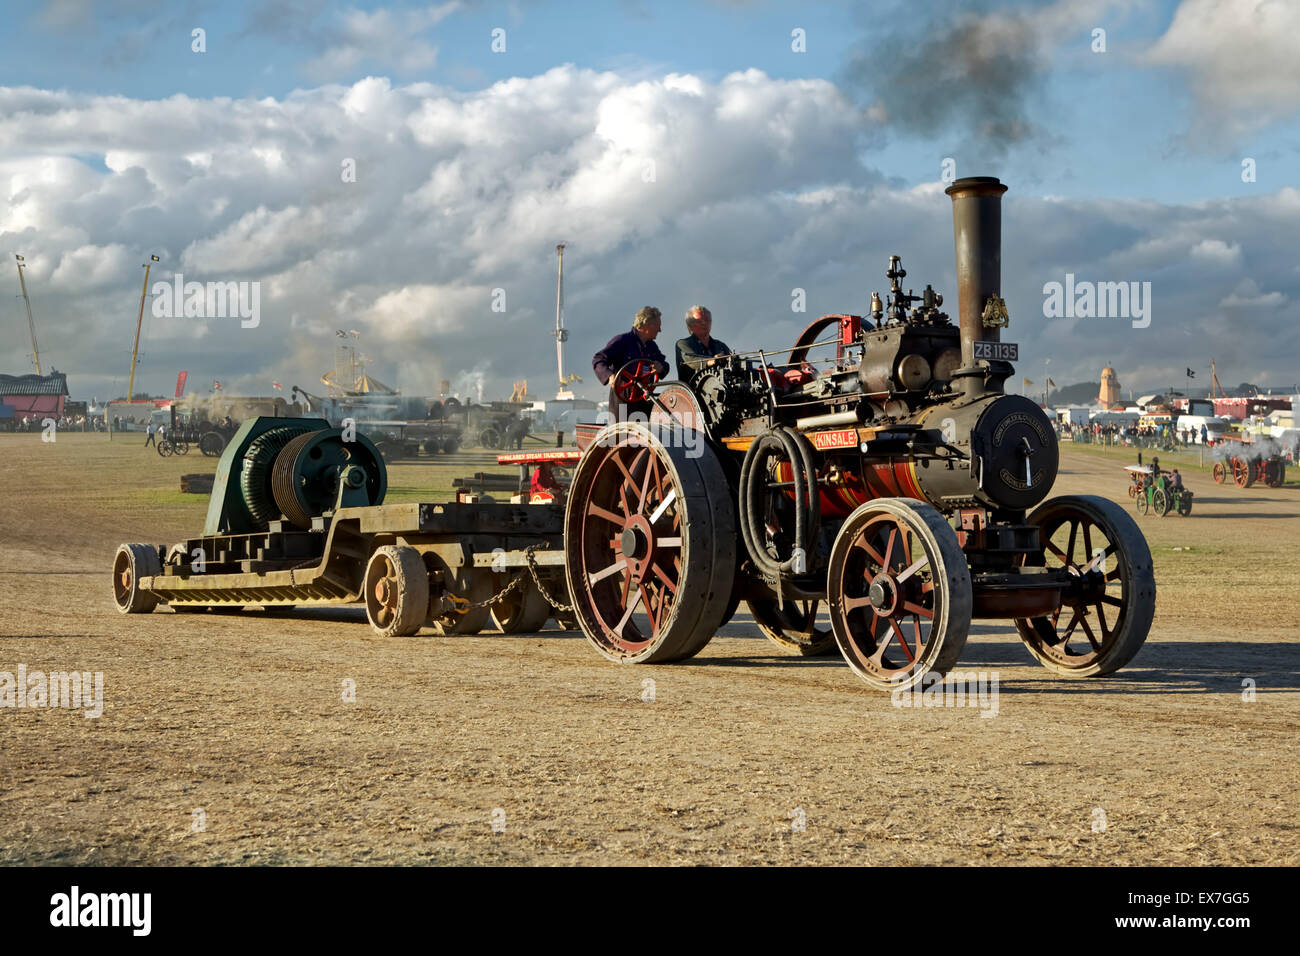 Fowler 6nhp General Purpose Engine No.21647 Kinsale Reg. No.ZB 1135 at The Great Dorset Steam Fair, Tarrant Hinton, - Stock Image